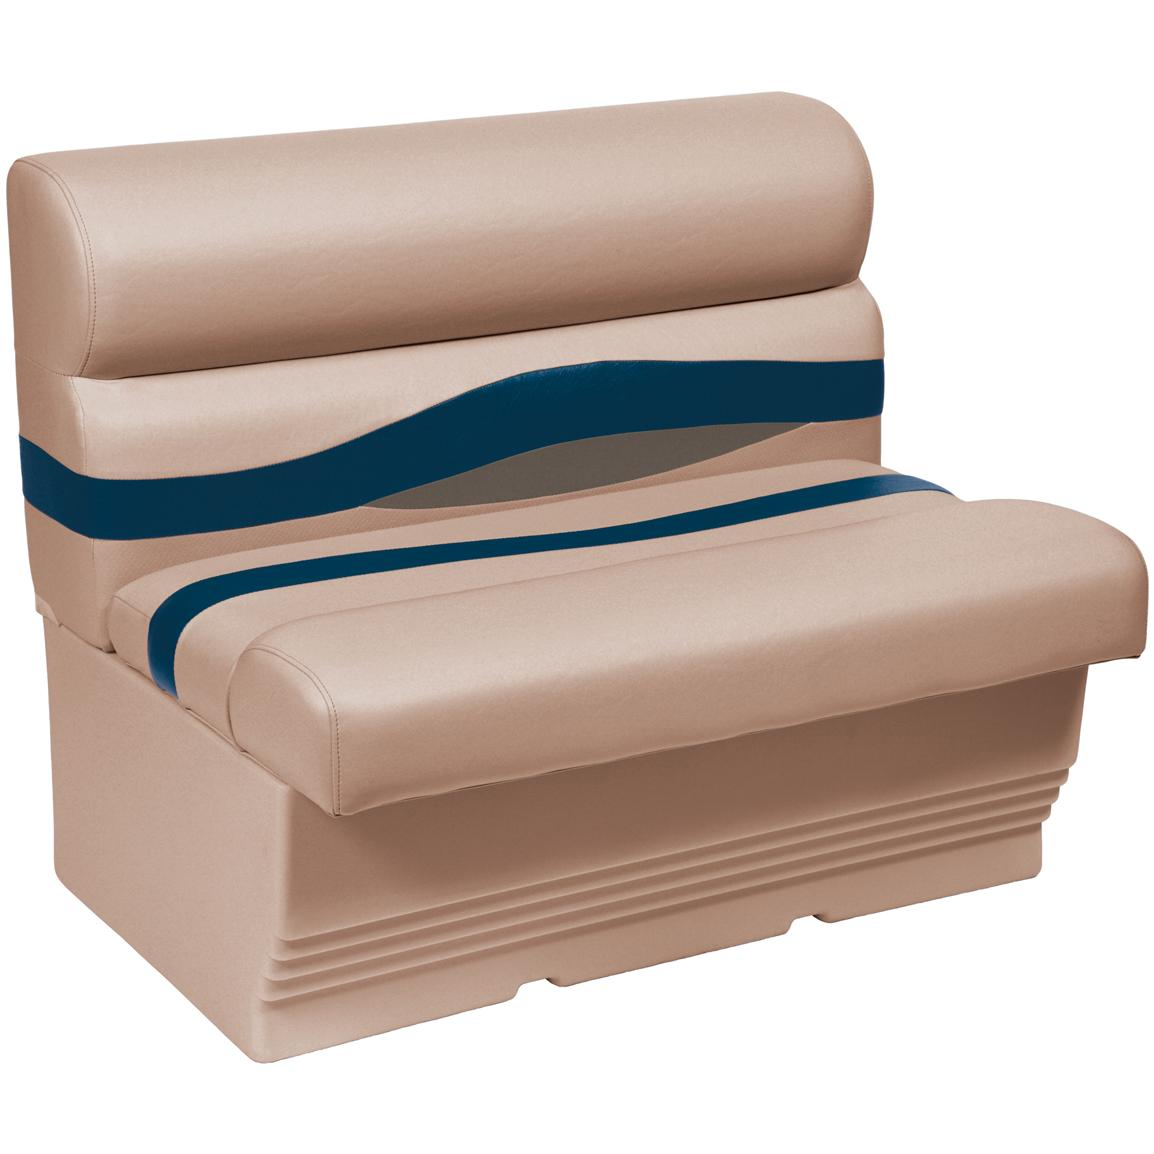 Wise® Premier 1100 Series 36 inch Pontoon Bench Seat, Color D